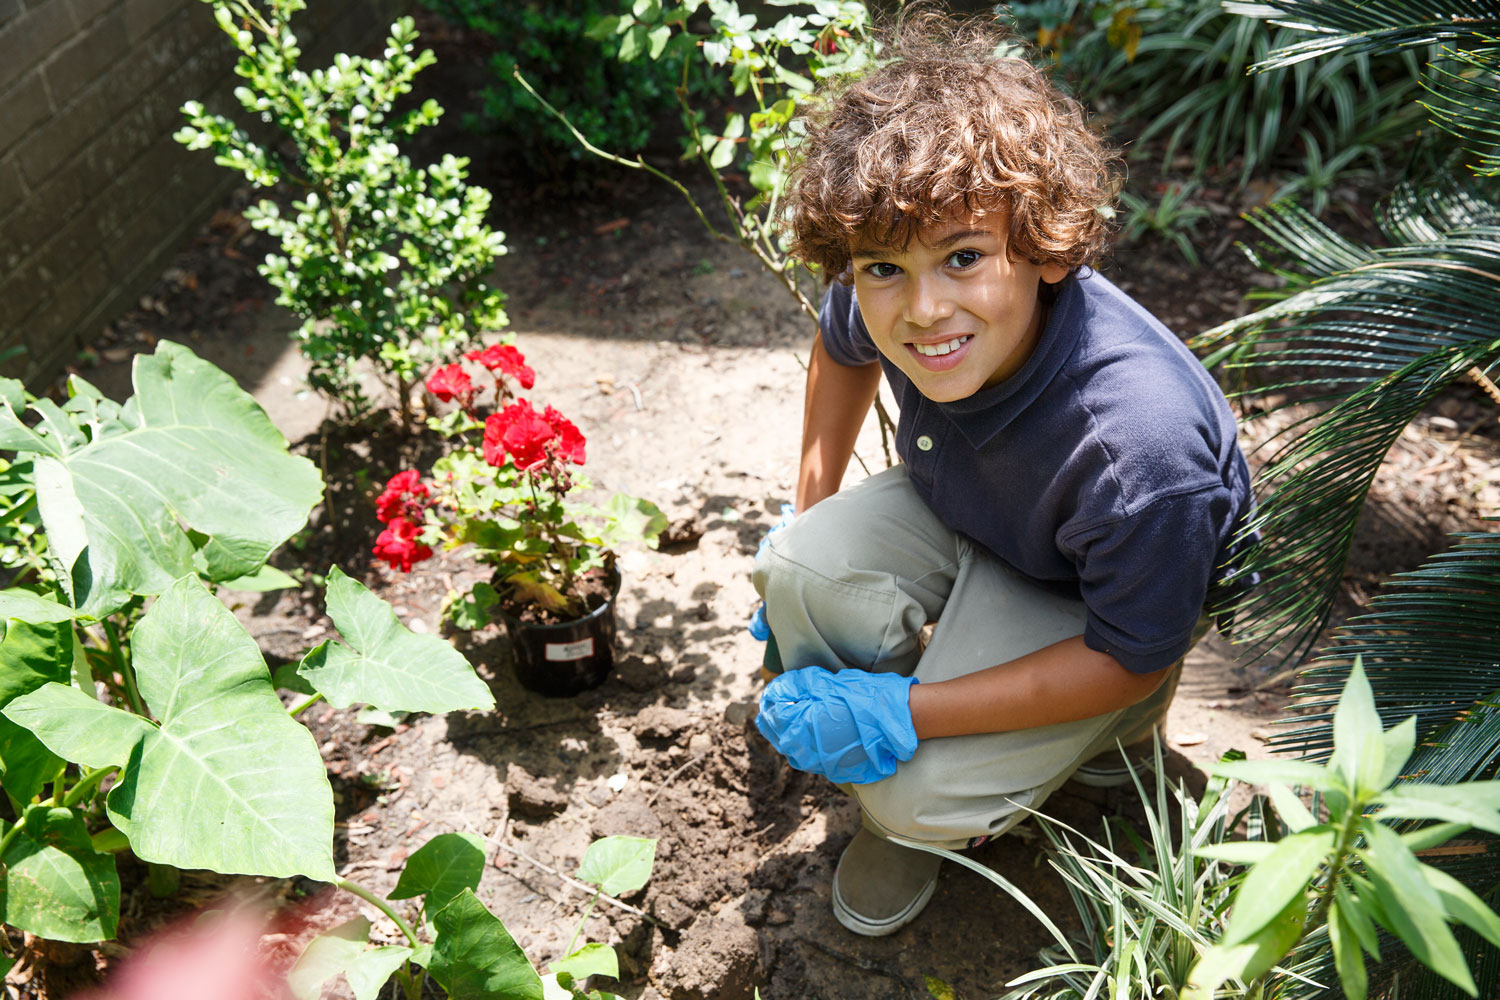 Harris County Community Garden Becomes Student Learning